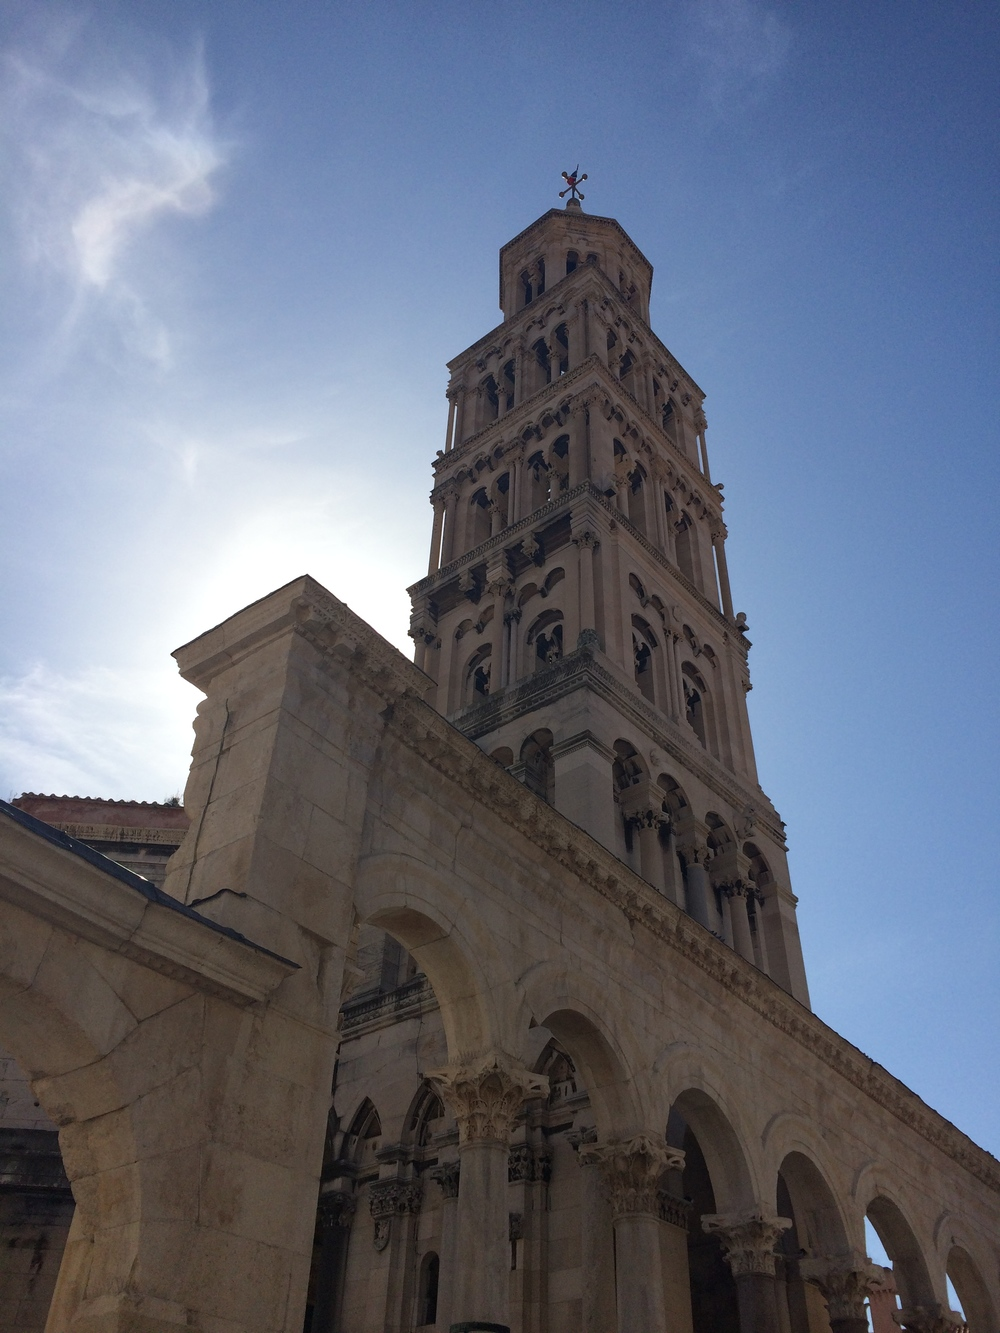 St. Domnius Cathedral Bell Tower in old town Split.